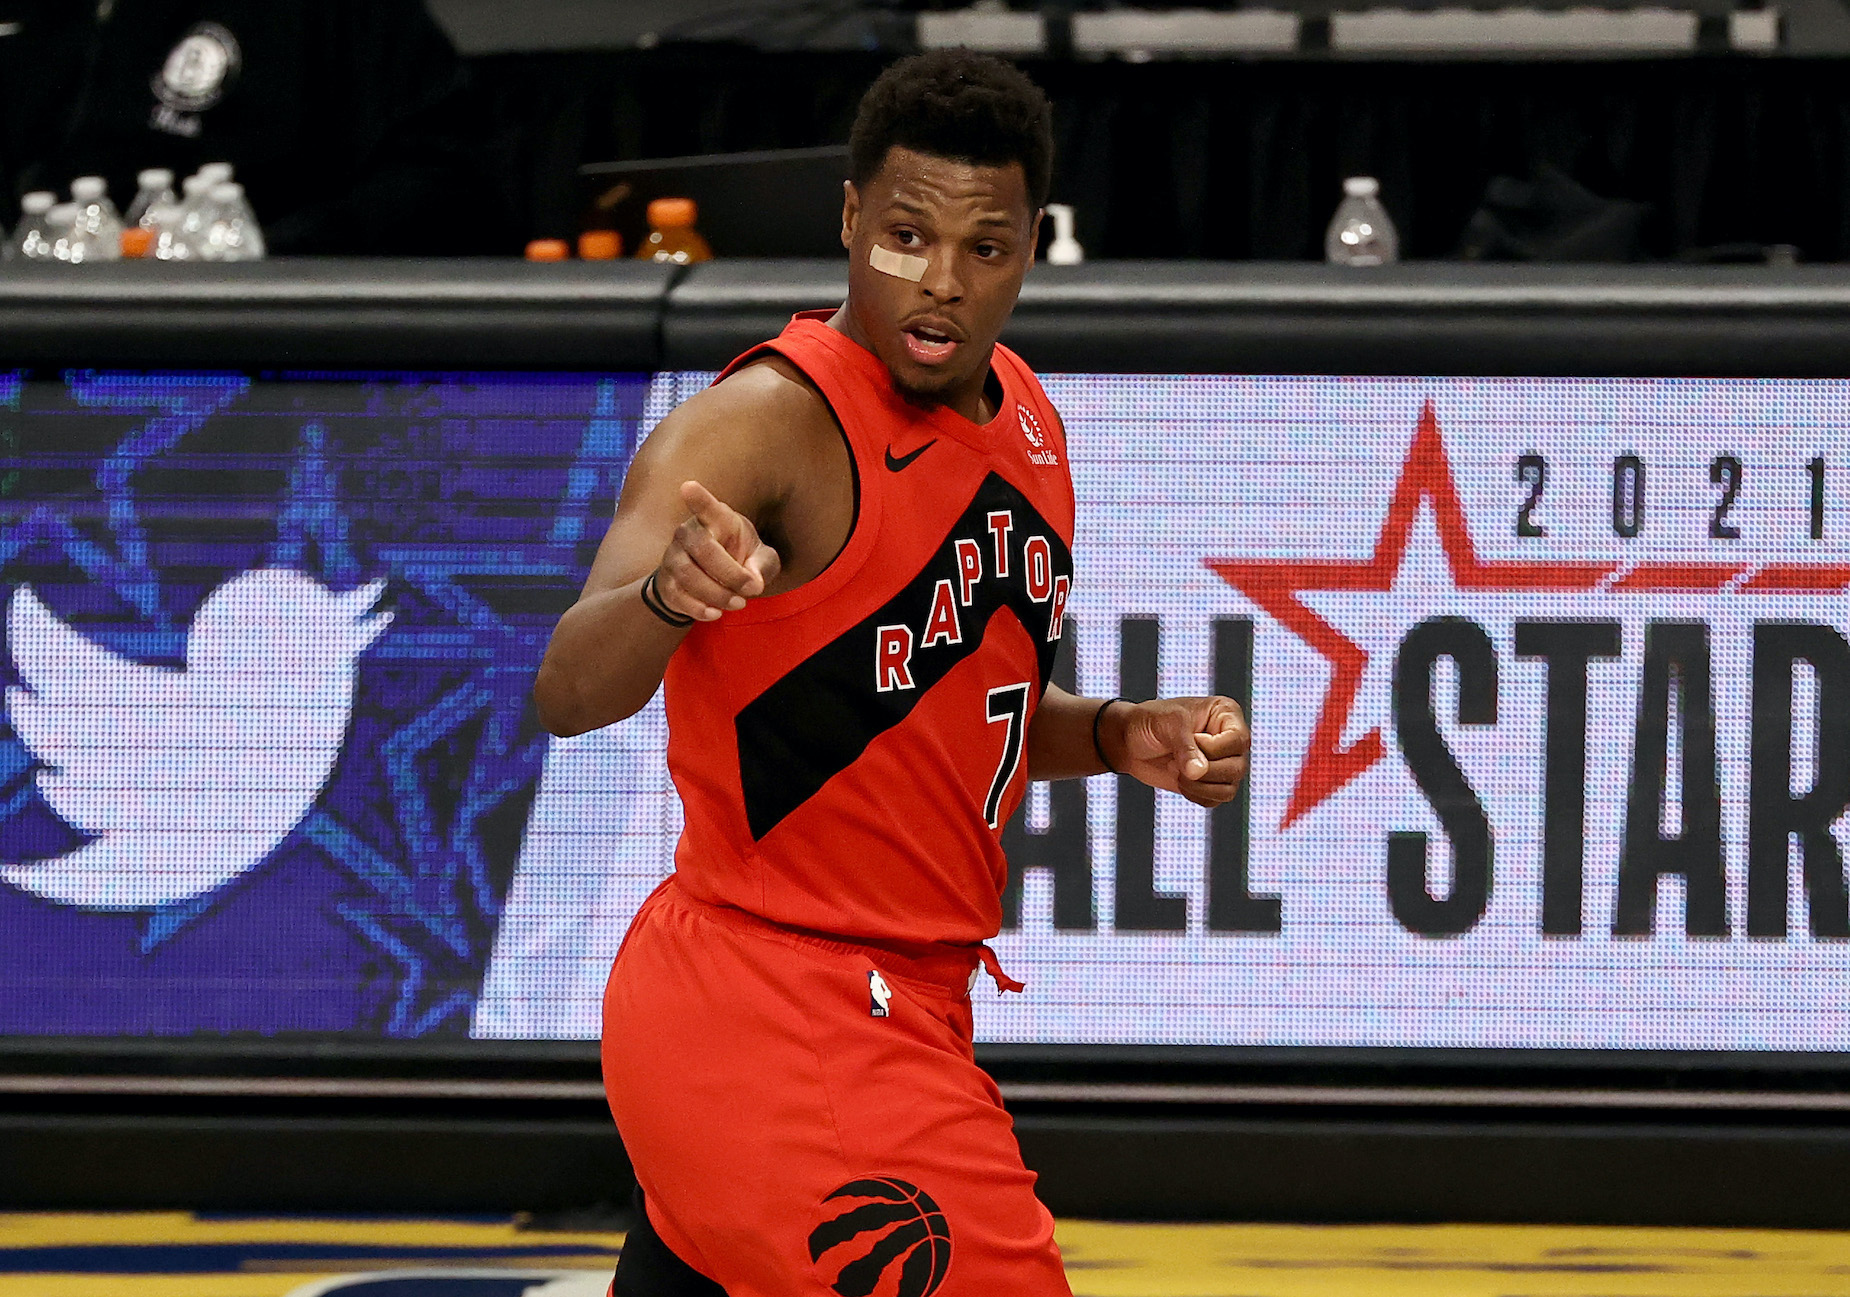 Kyle Lowry Once Found Himself Facing a Battery Charge After Things Got Heated During a Pickup Game